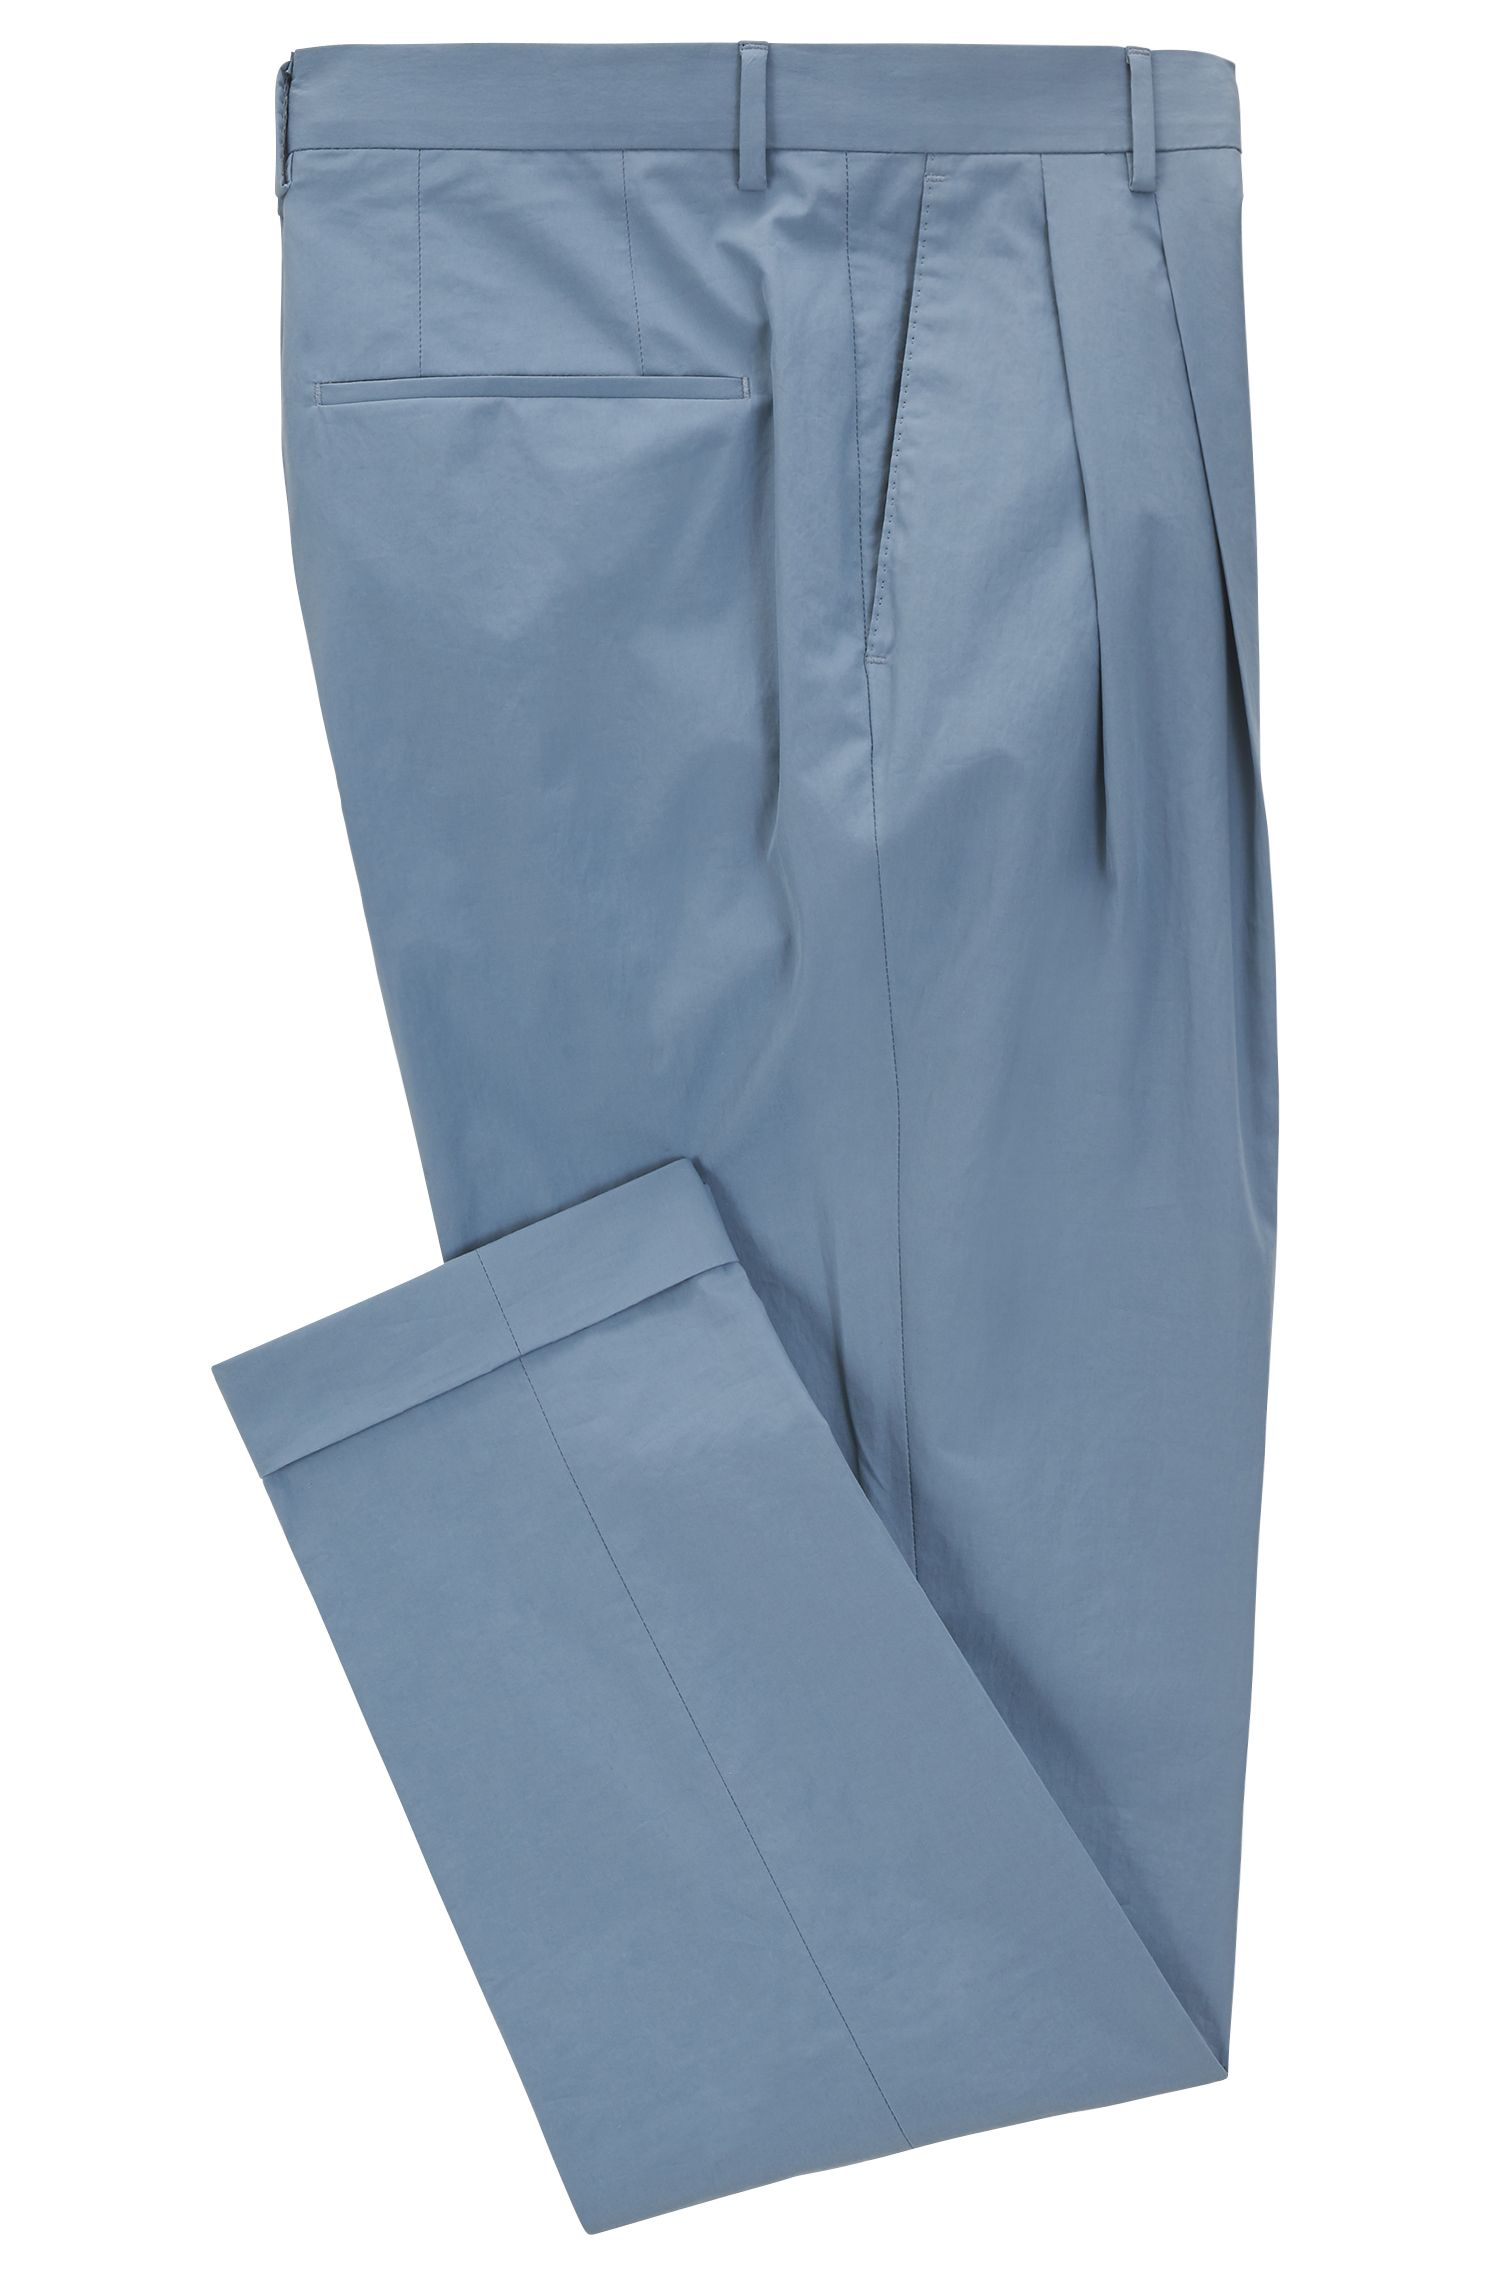 Pleated Cotton Dress Pant, Relaxed Fit | Orville, Open Grey